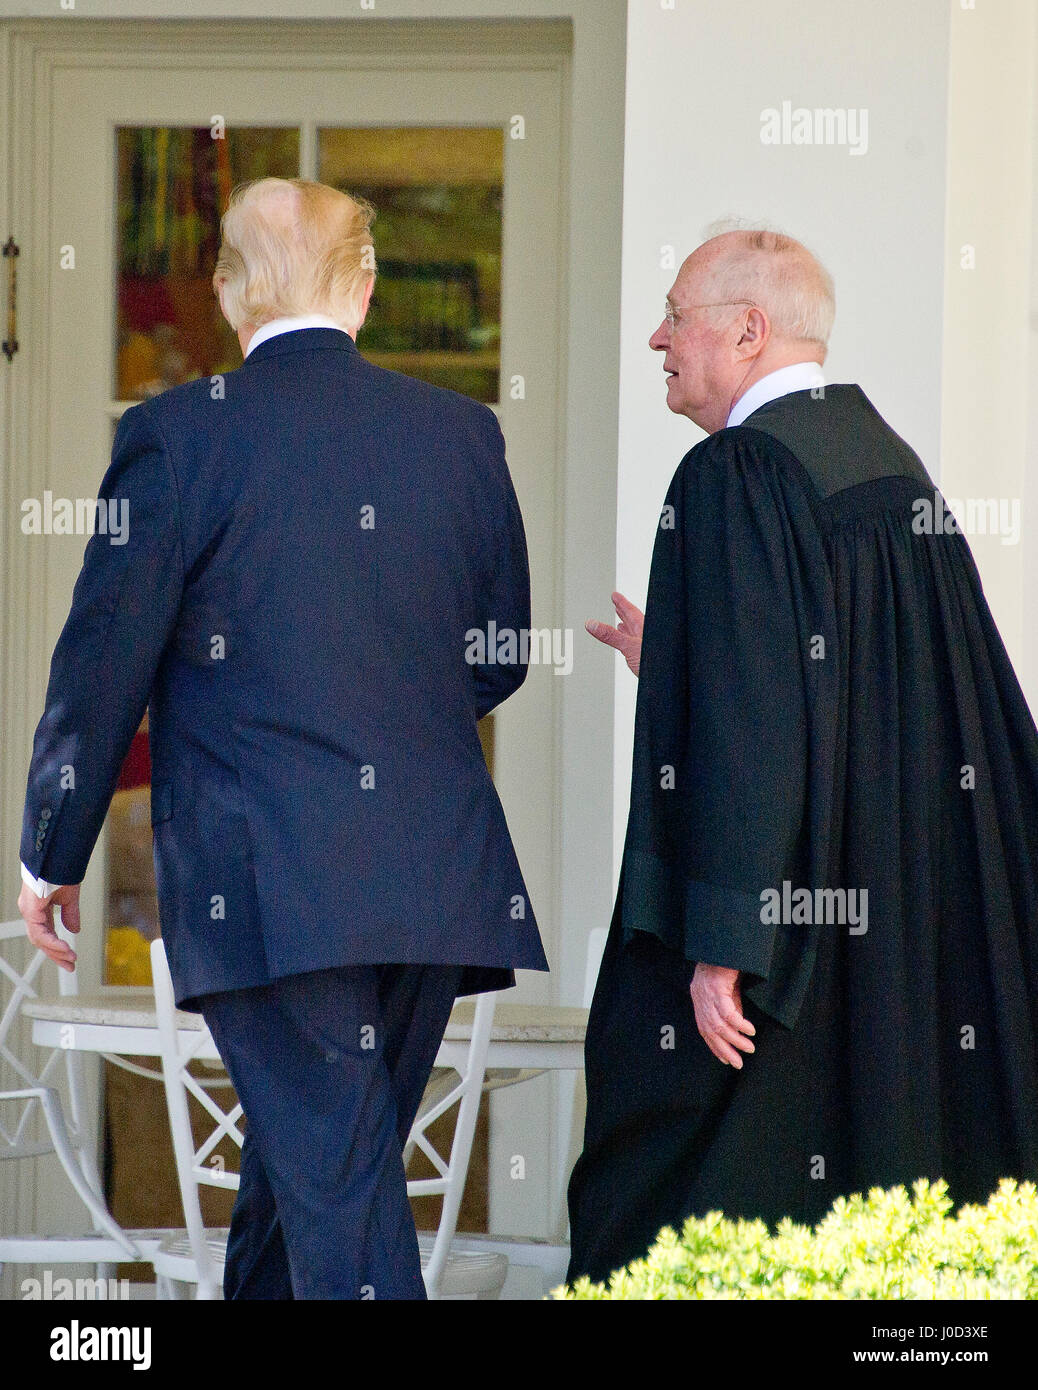 Washington, Us. 10th Apr, 2017. United States President Donald J. Trump speaks with Associate Justice of the US - Stock Image